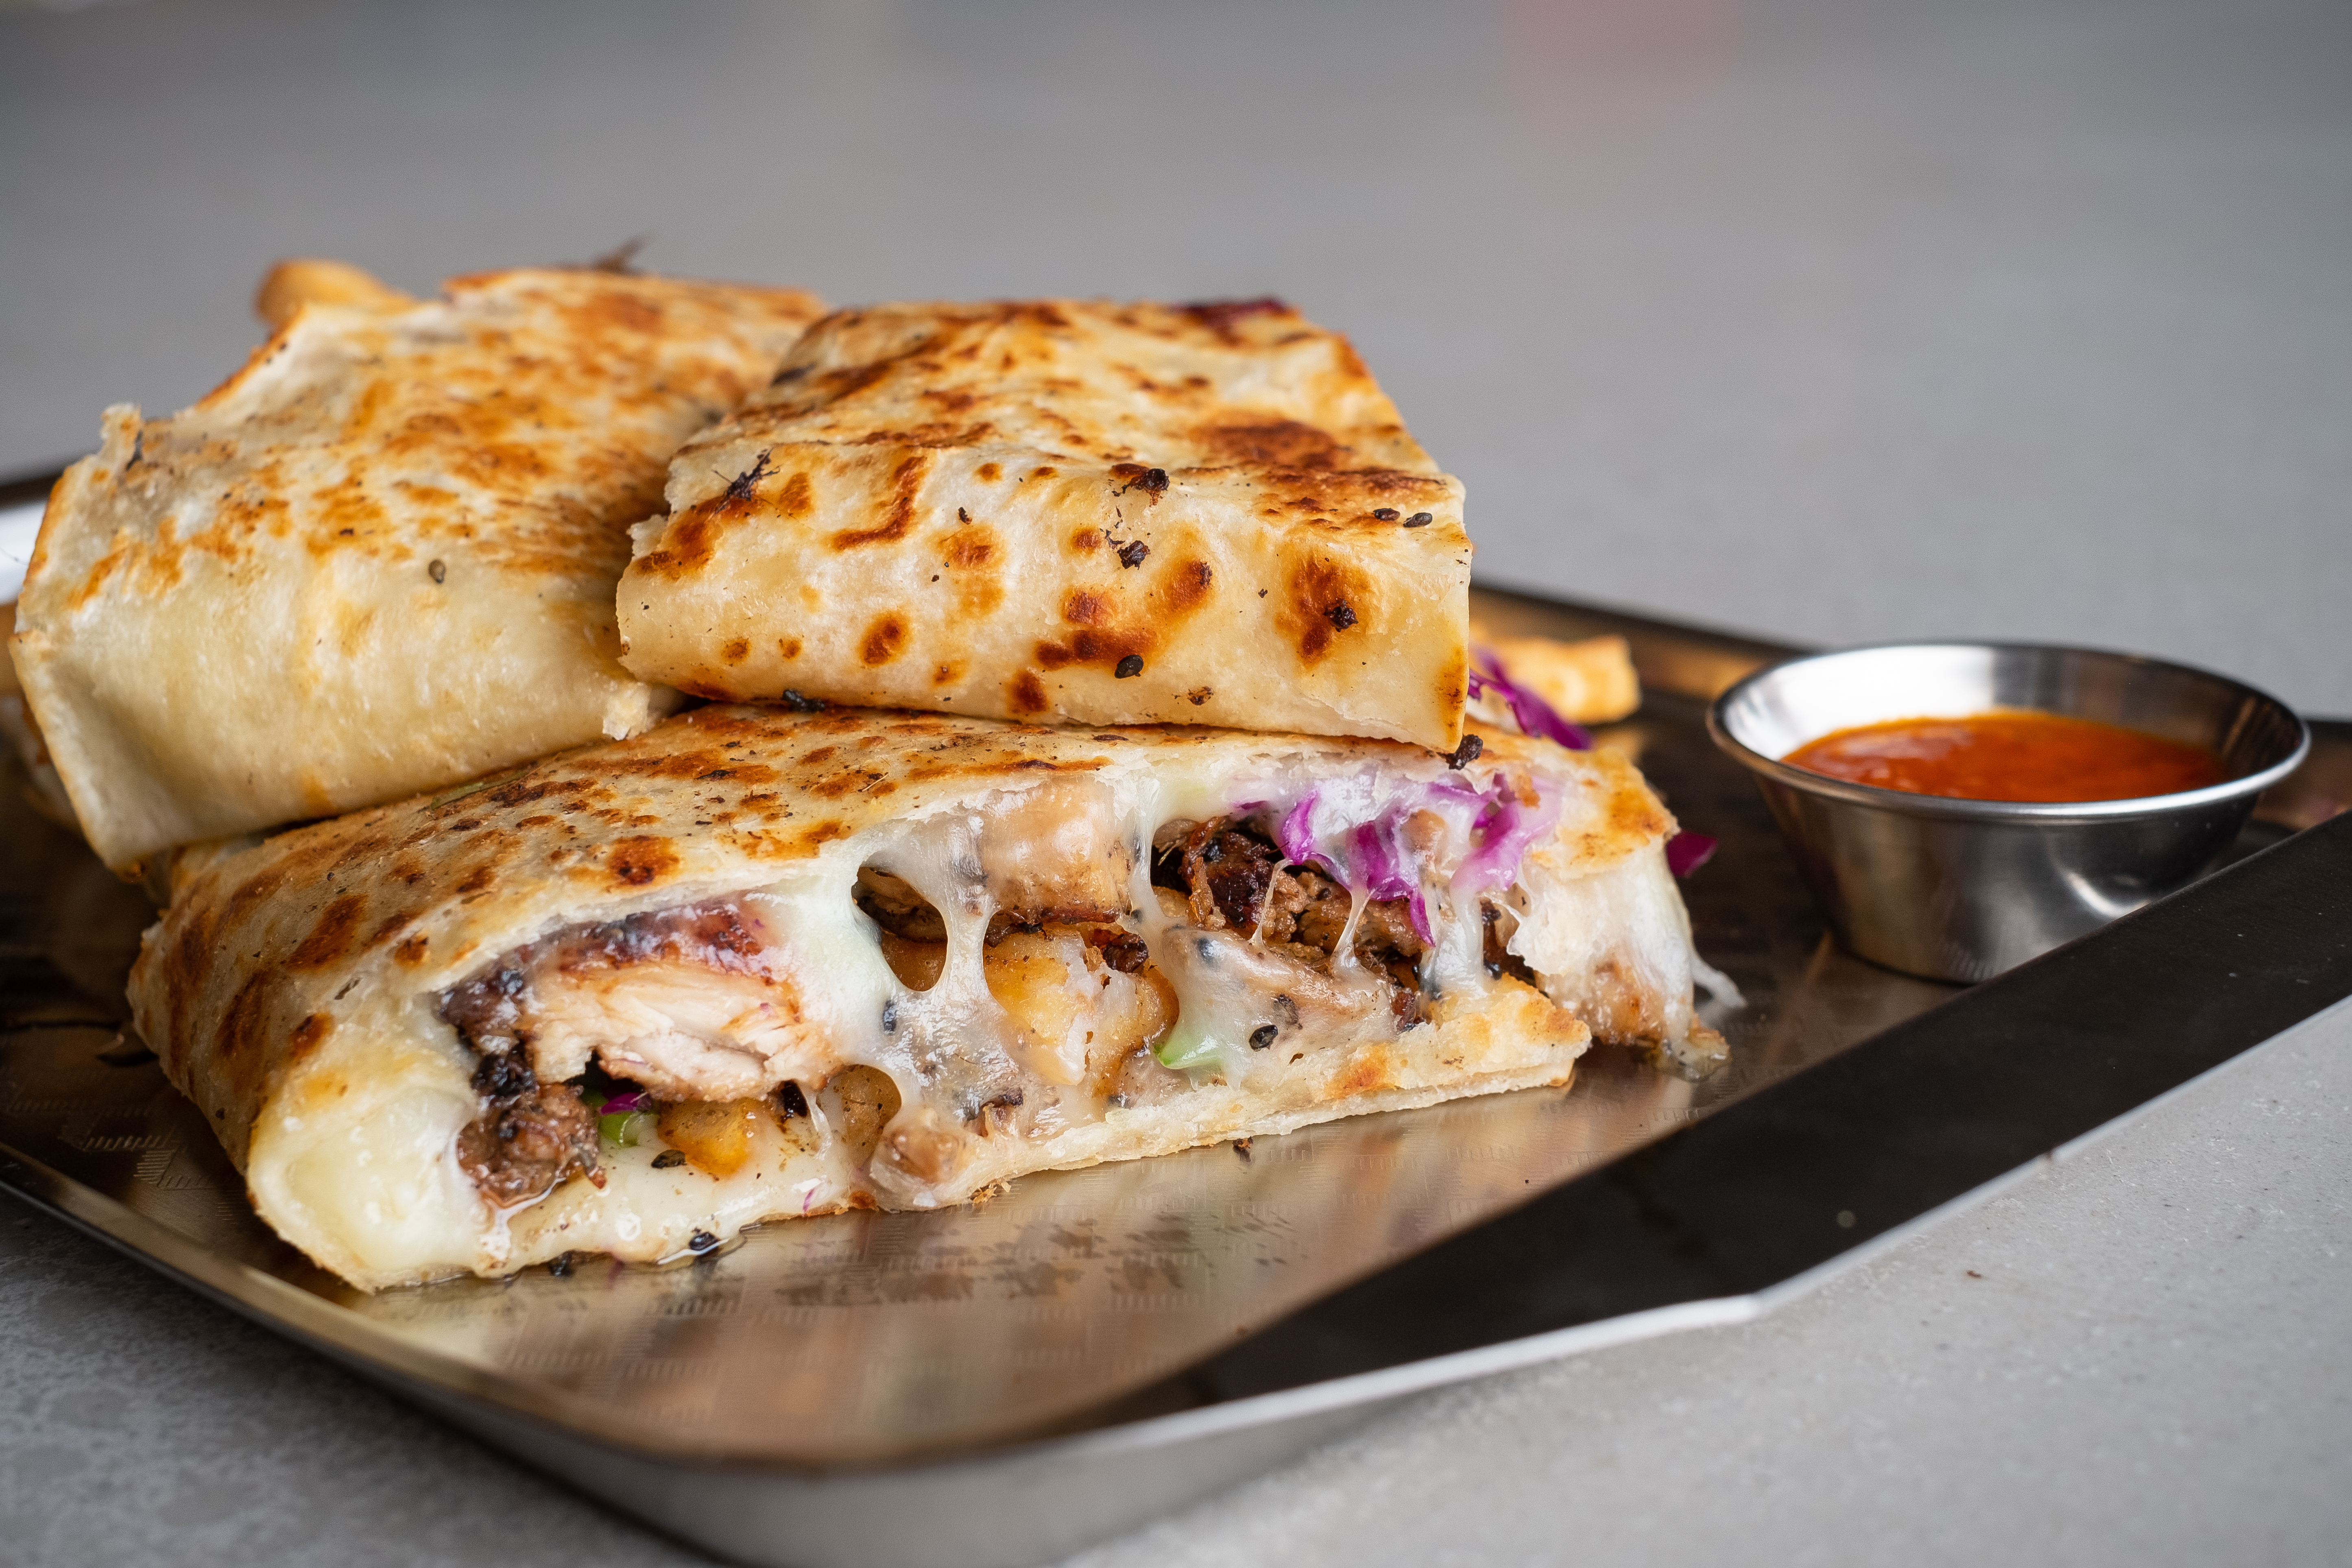 A giant quessadilla stuffed with goodies and gooey cheese